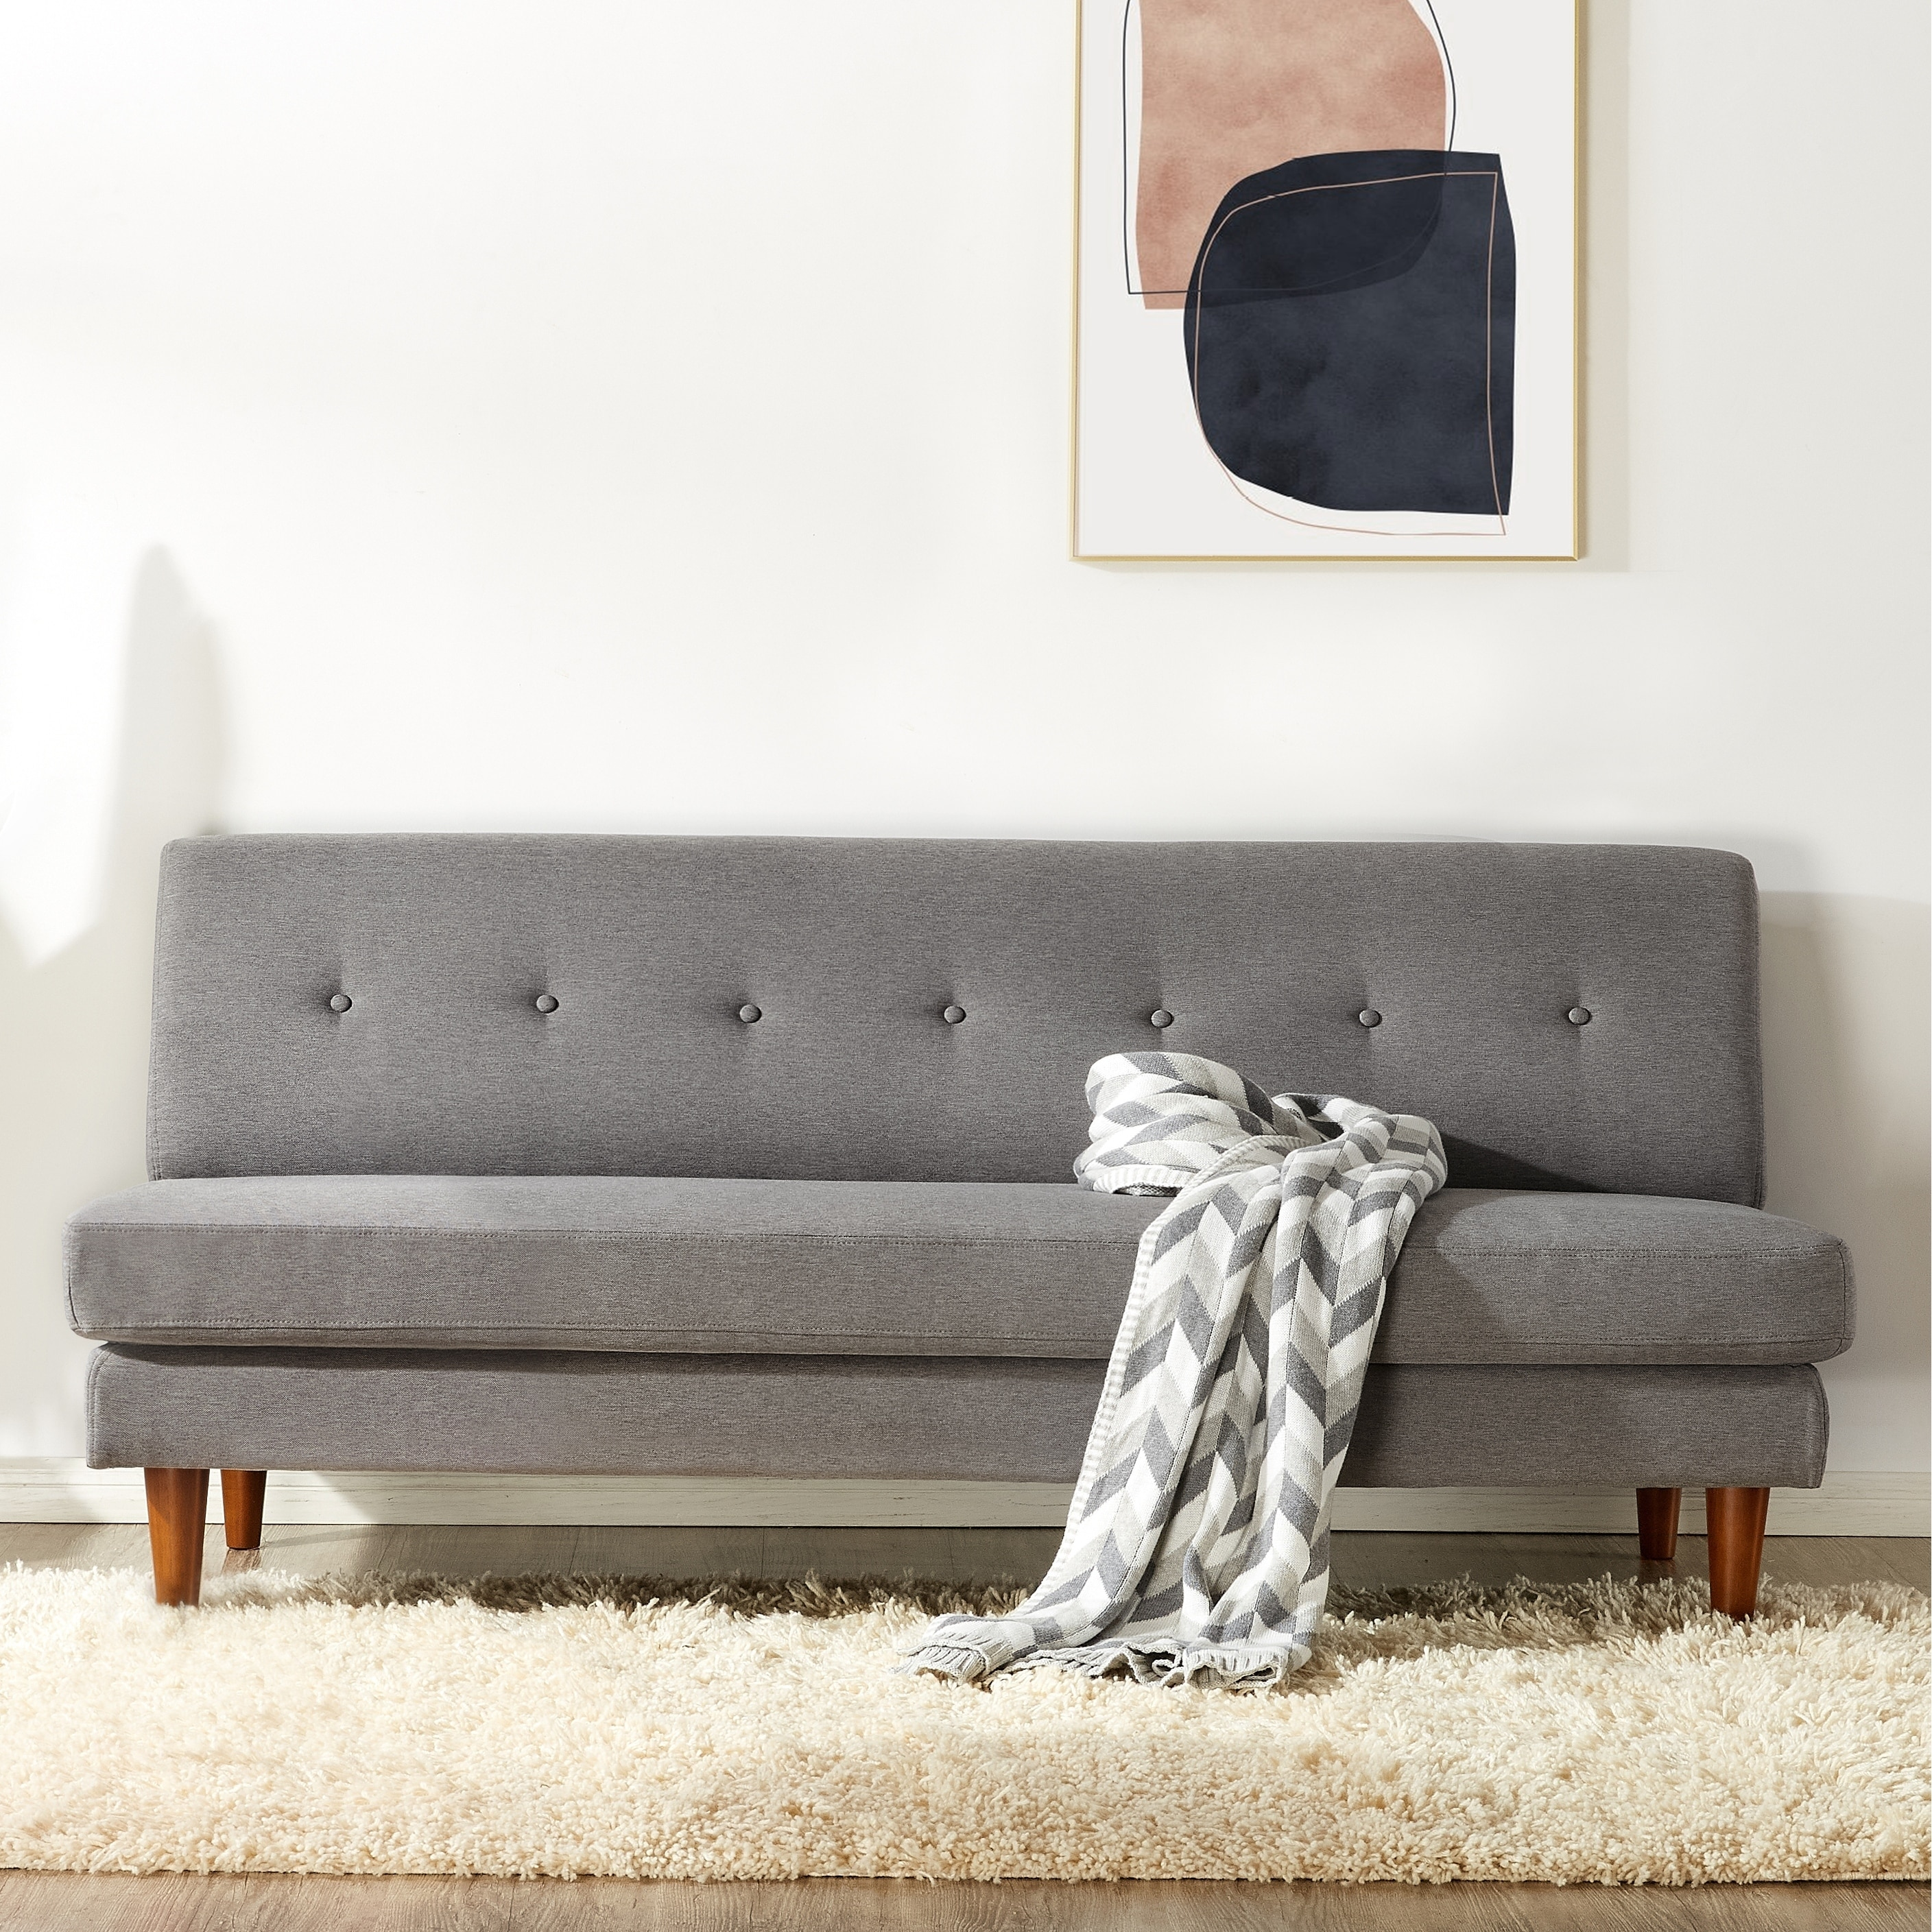 mette modern armless loveseat sofa couch tufted linen fabric classic grey crown comfort